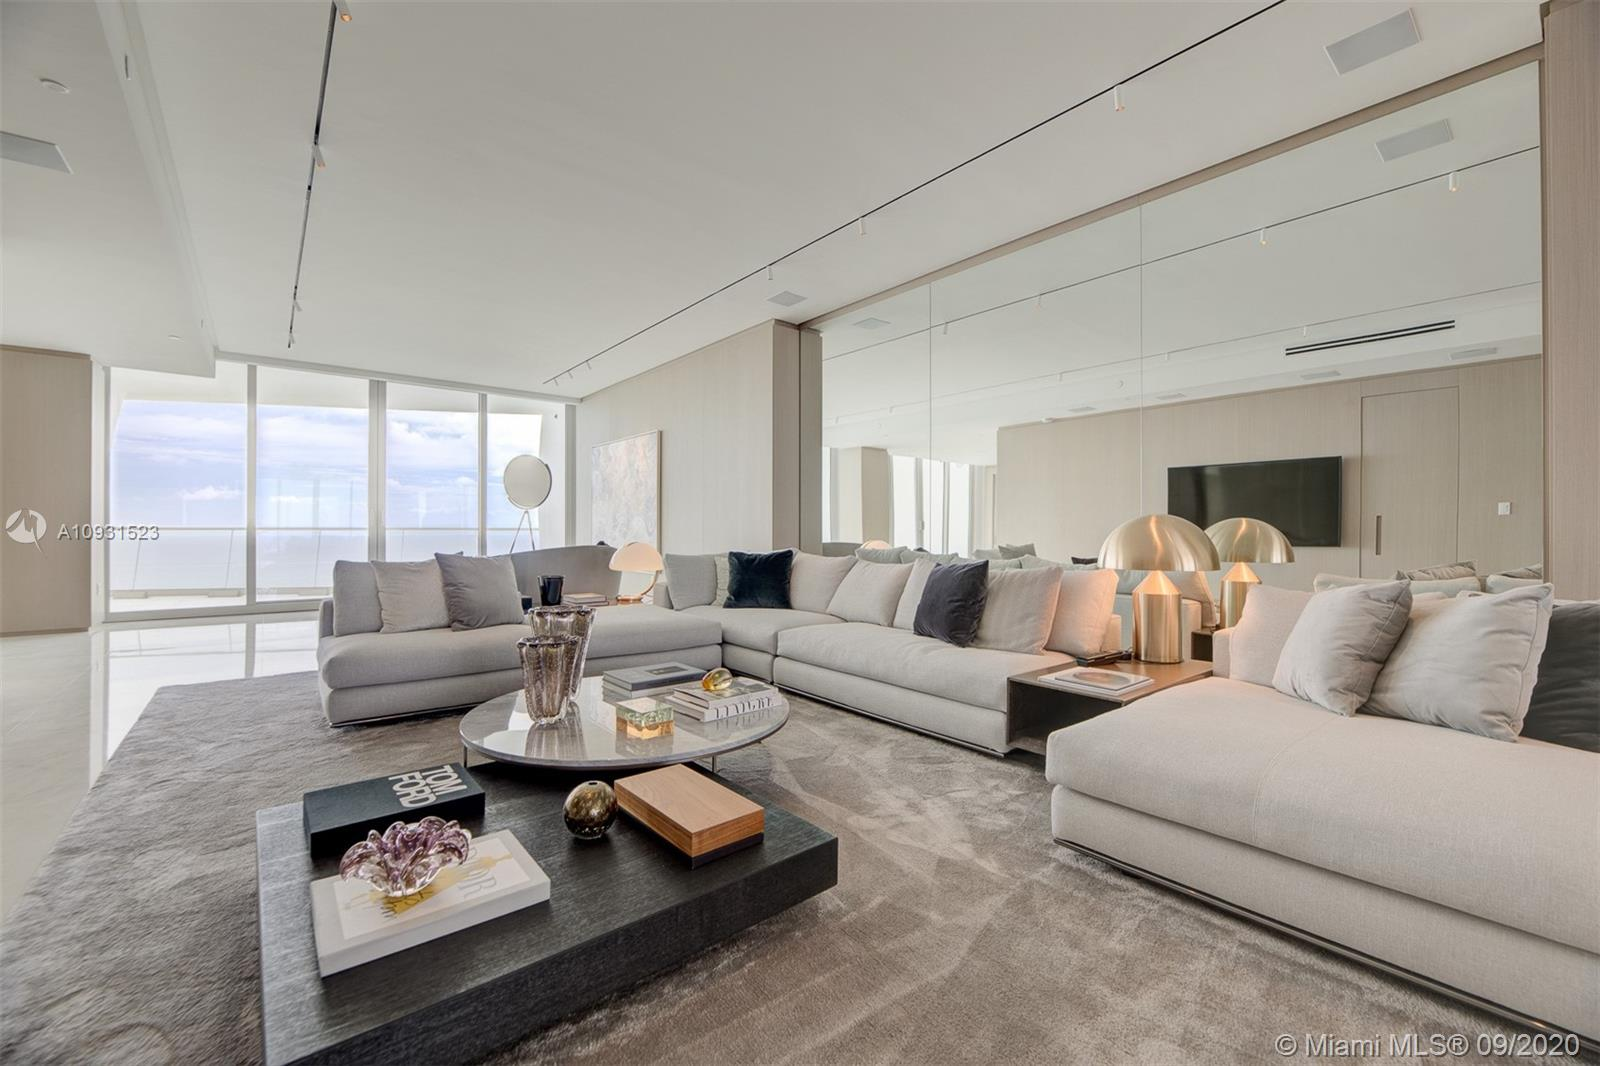 16901 Collins Ave, Unit #4403 Luxury Real Estate